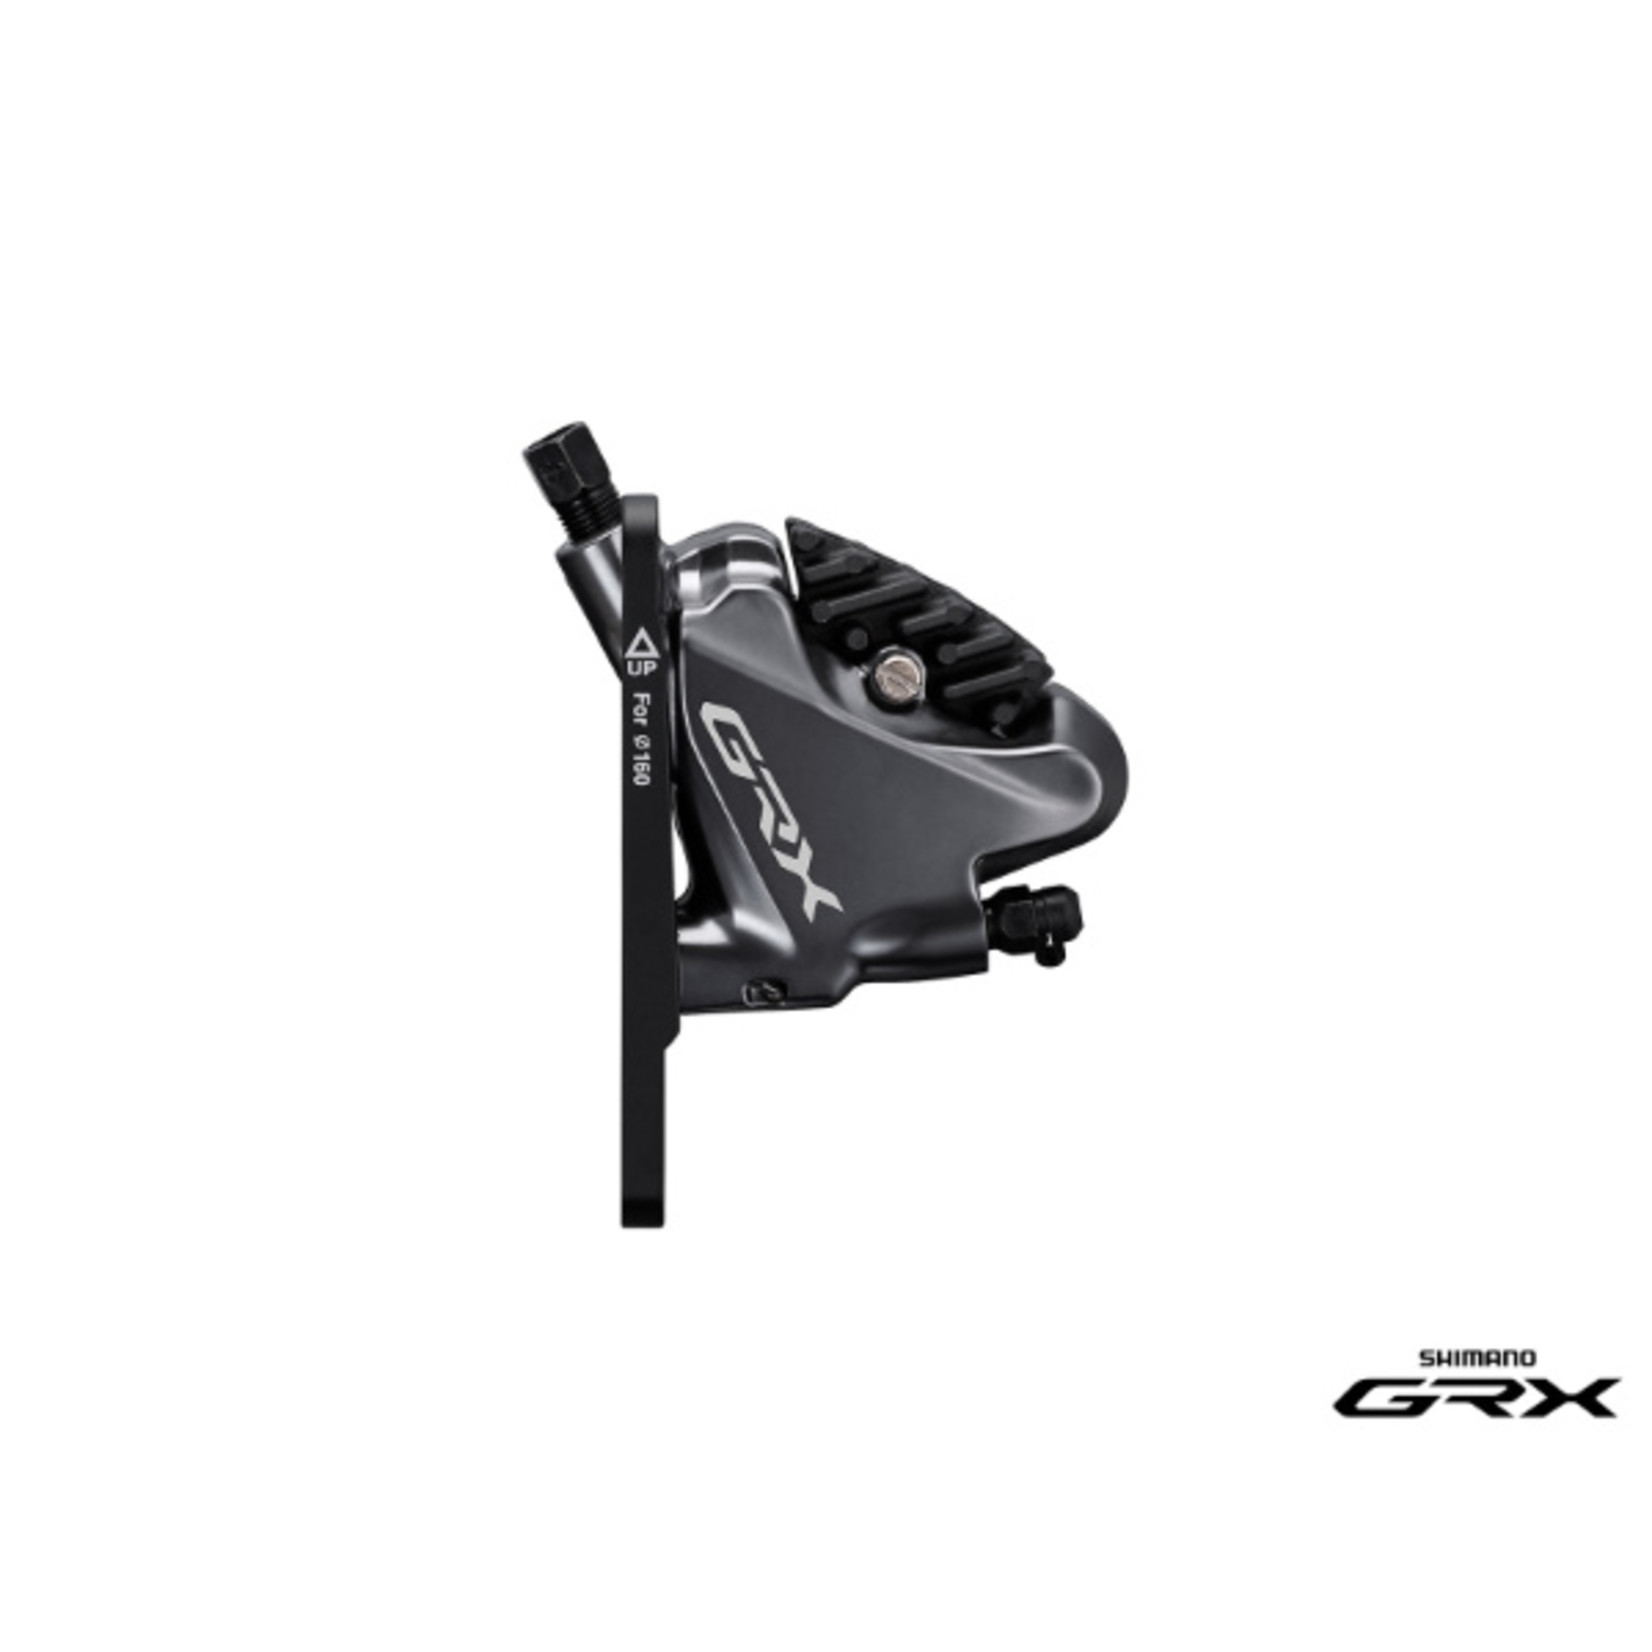 Shimano Shimano, BR-RX810 Front Disc Brake GRX w/L03A Resin Pads